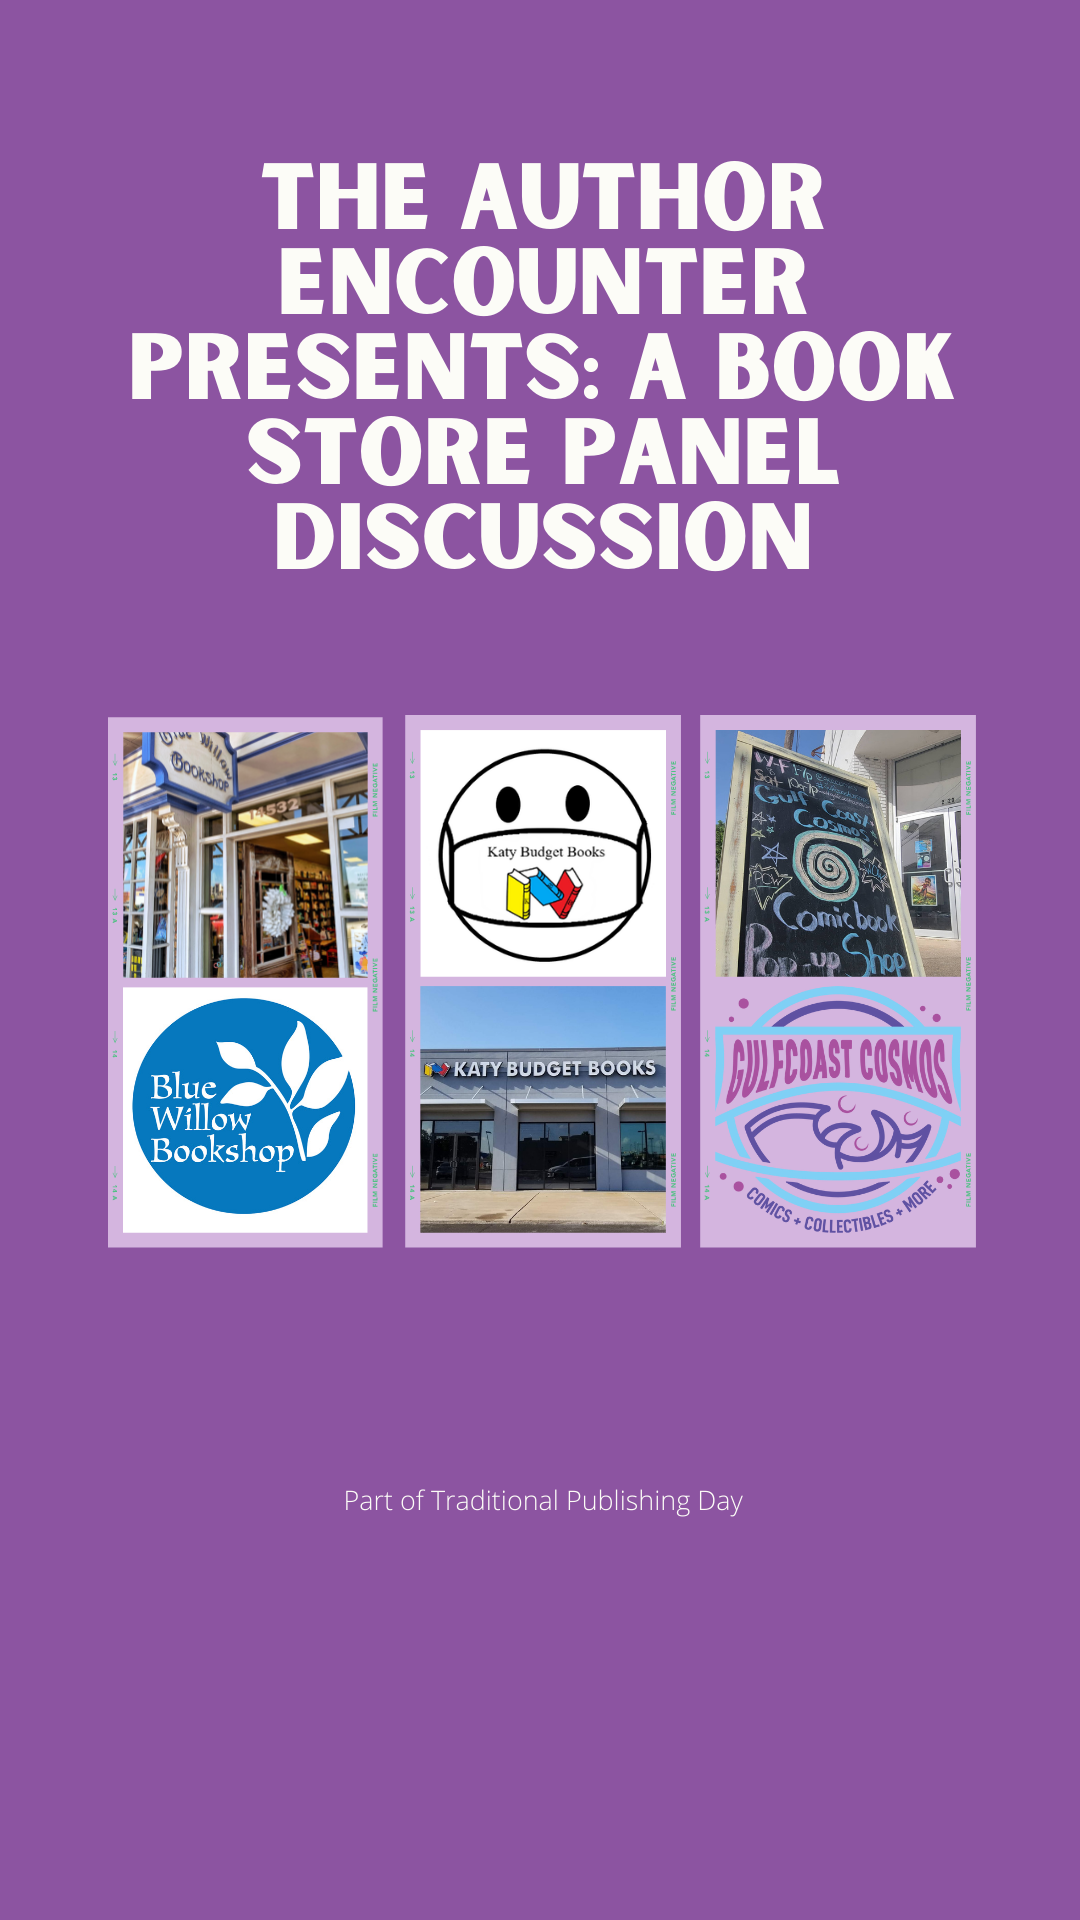 image for The bookstore panel discussion